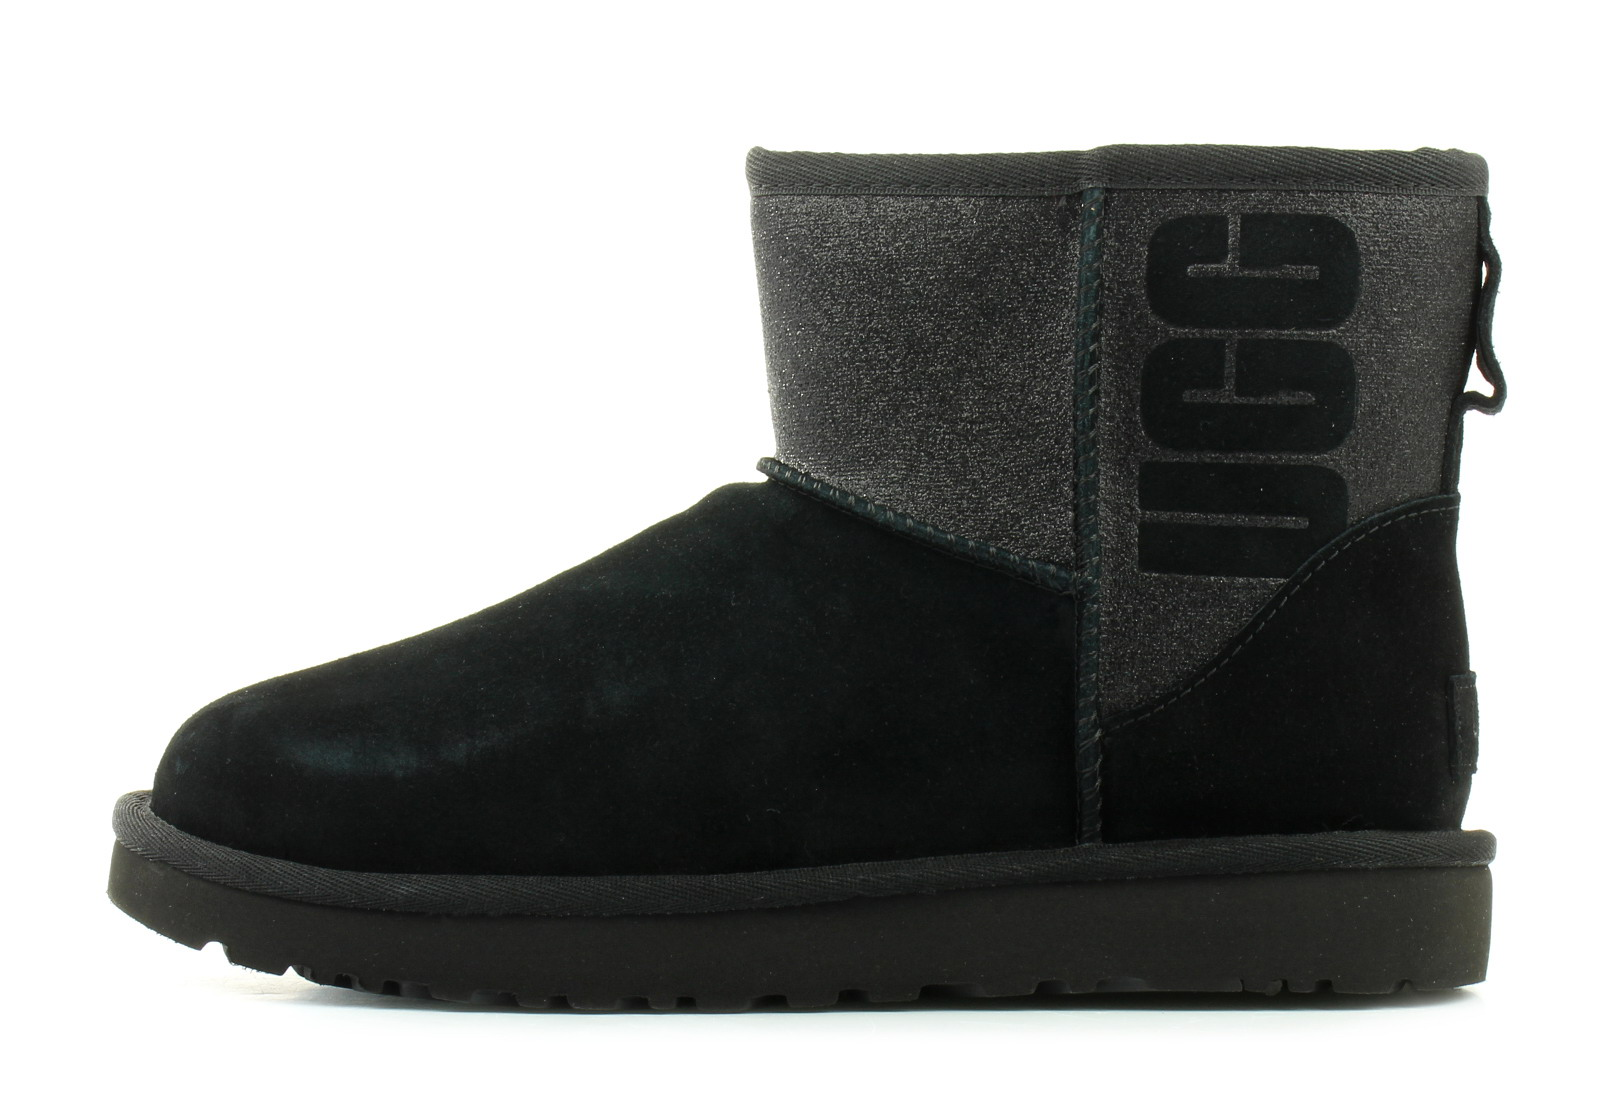 98eff844f5b Ugg Boots - Classic Mini Ugg Sparkle - 1098452-blk - Online shop for  sneakers, shoes and boots